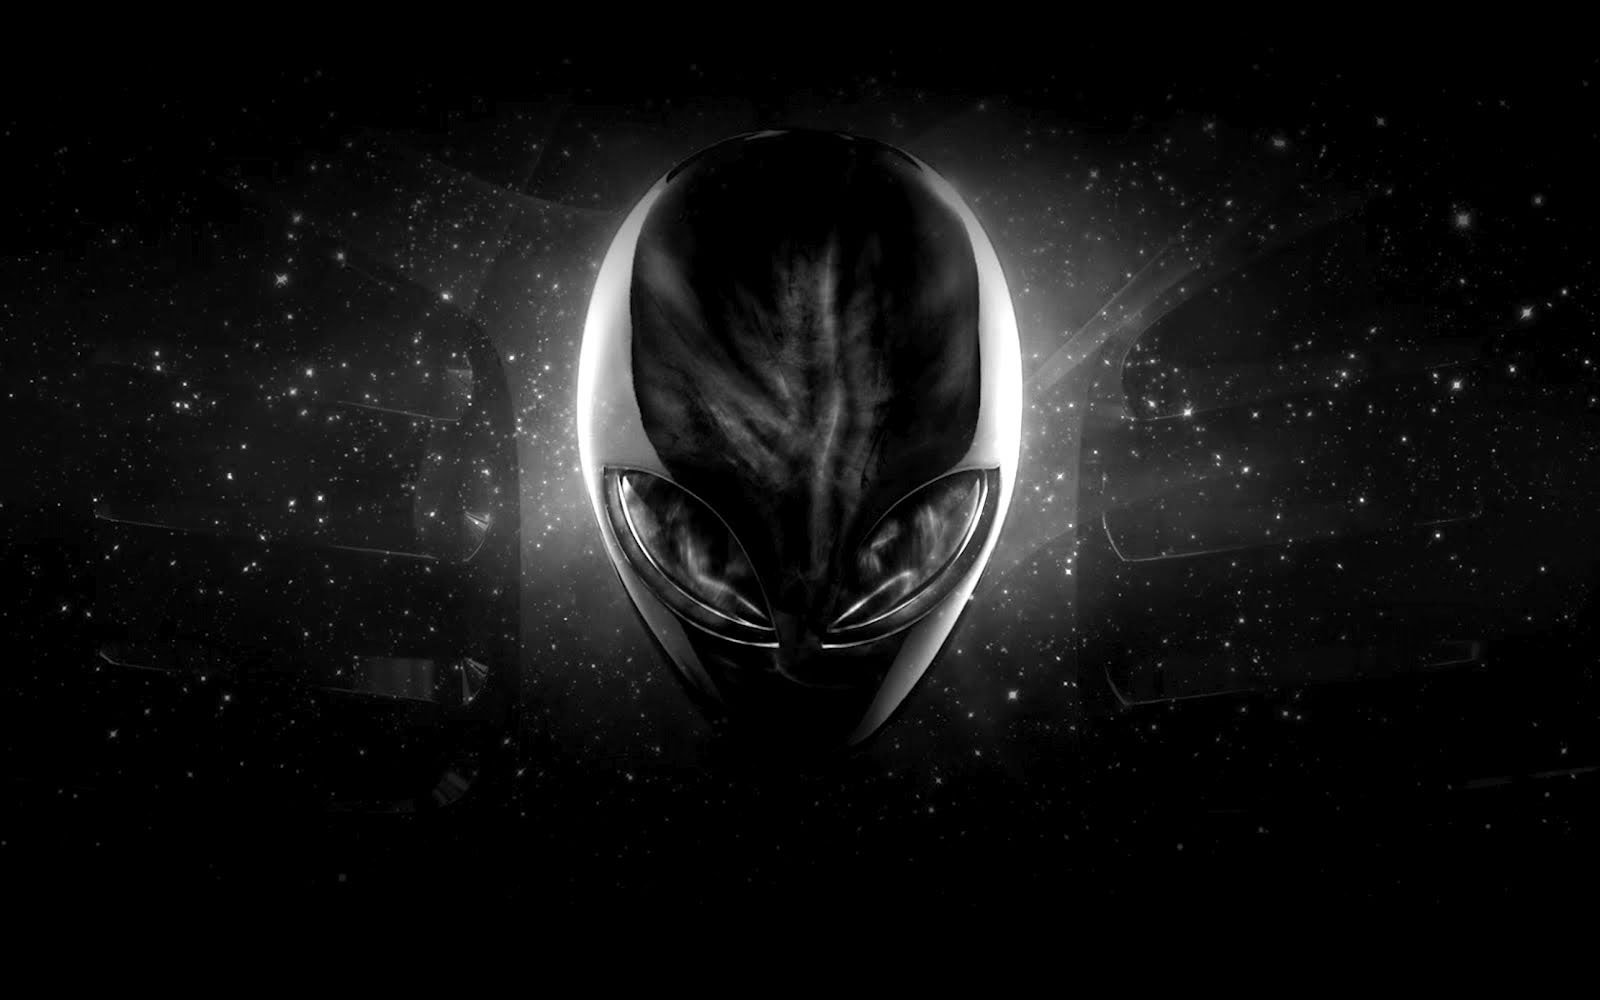 wallpapers Alienware Wallpapers 1600x1000